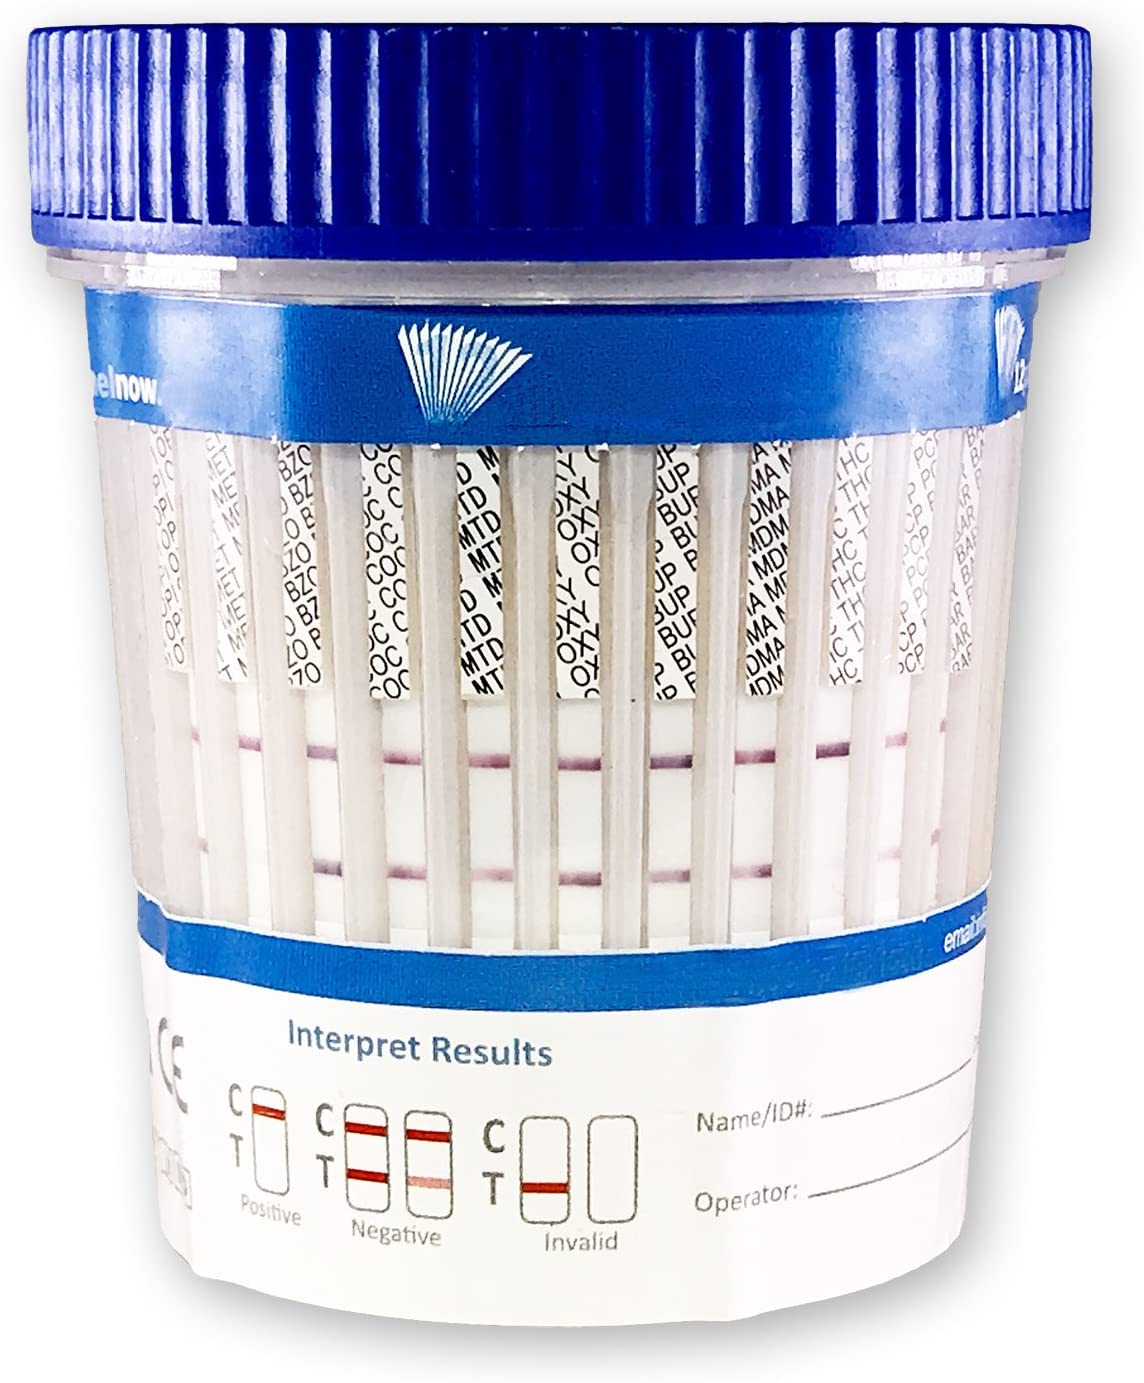 25 CUPS - Urinalysis Kits - 12 Panel Diagnostic Multi Drug Screen Cup | Urine Drug Screening CLIA Waived, AMP, BAR, BUP, BZO, CO, THC, MOP, MTD, MDM, OXY, METH, OPI, MOR (25)